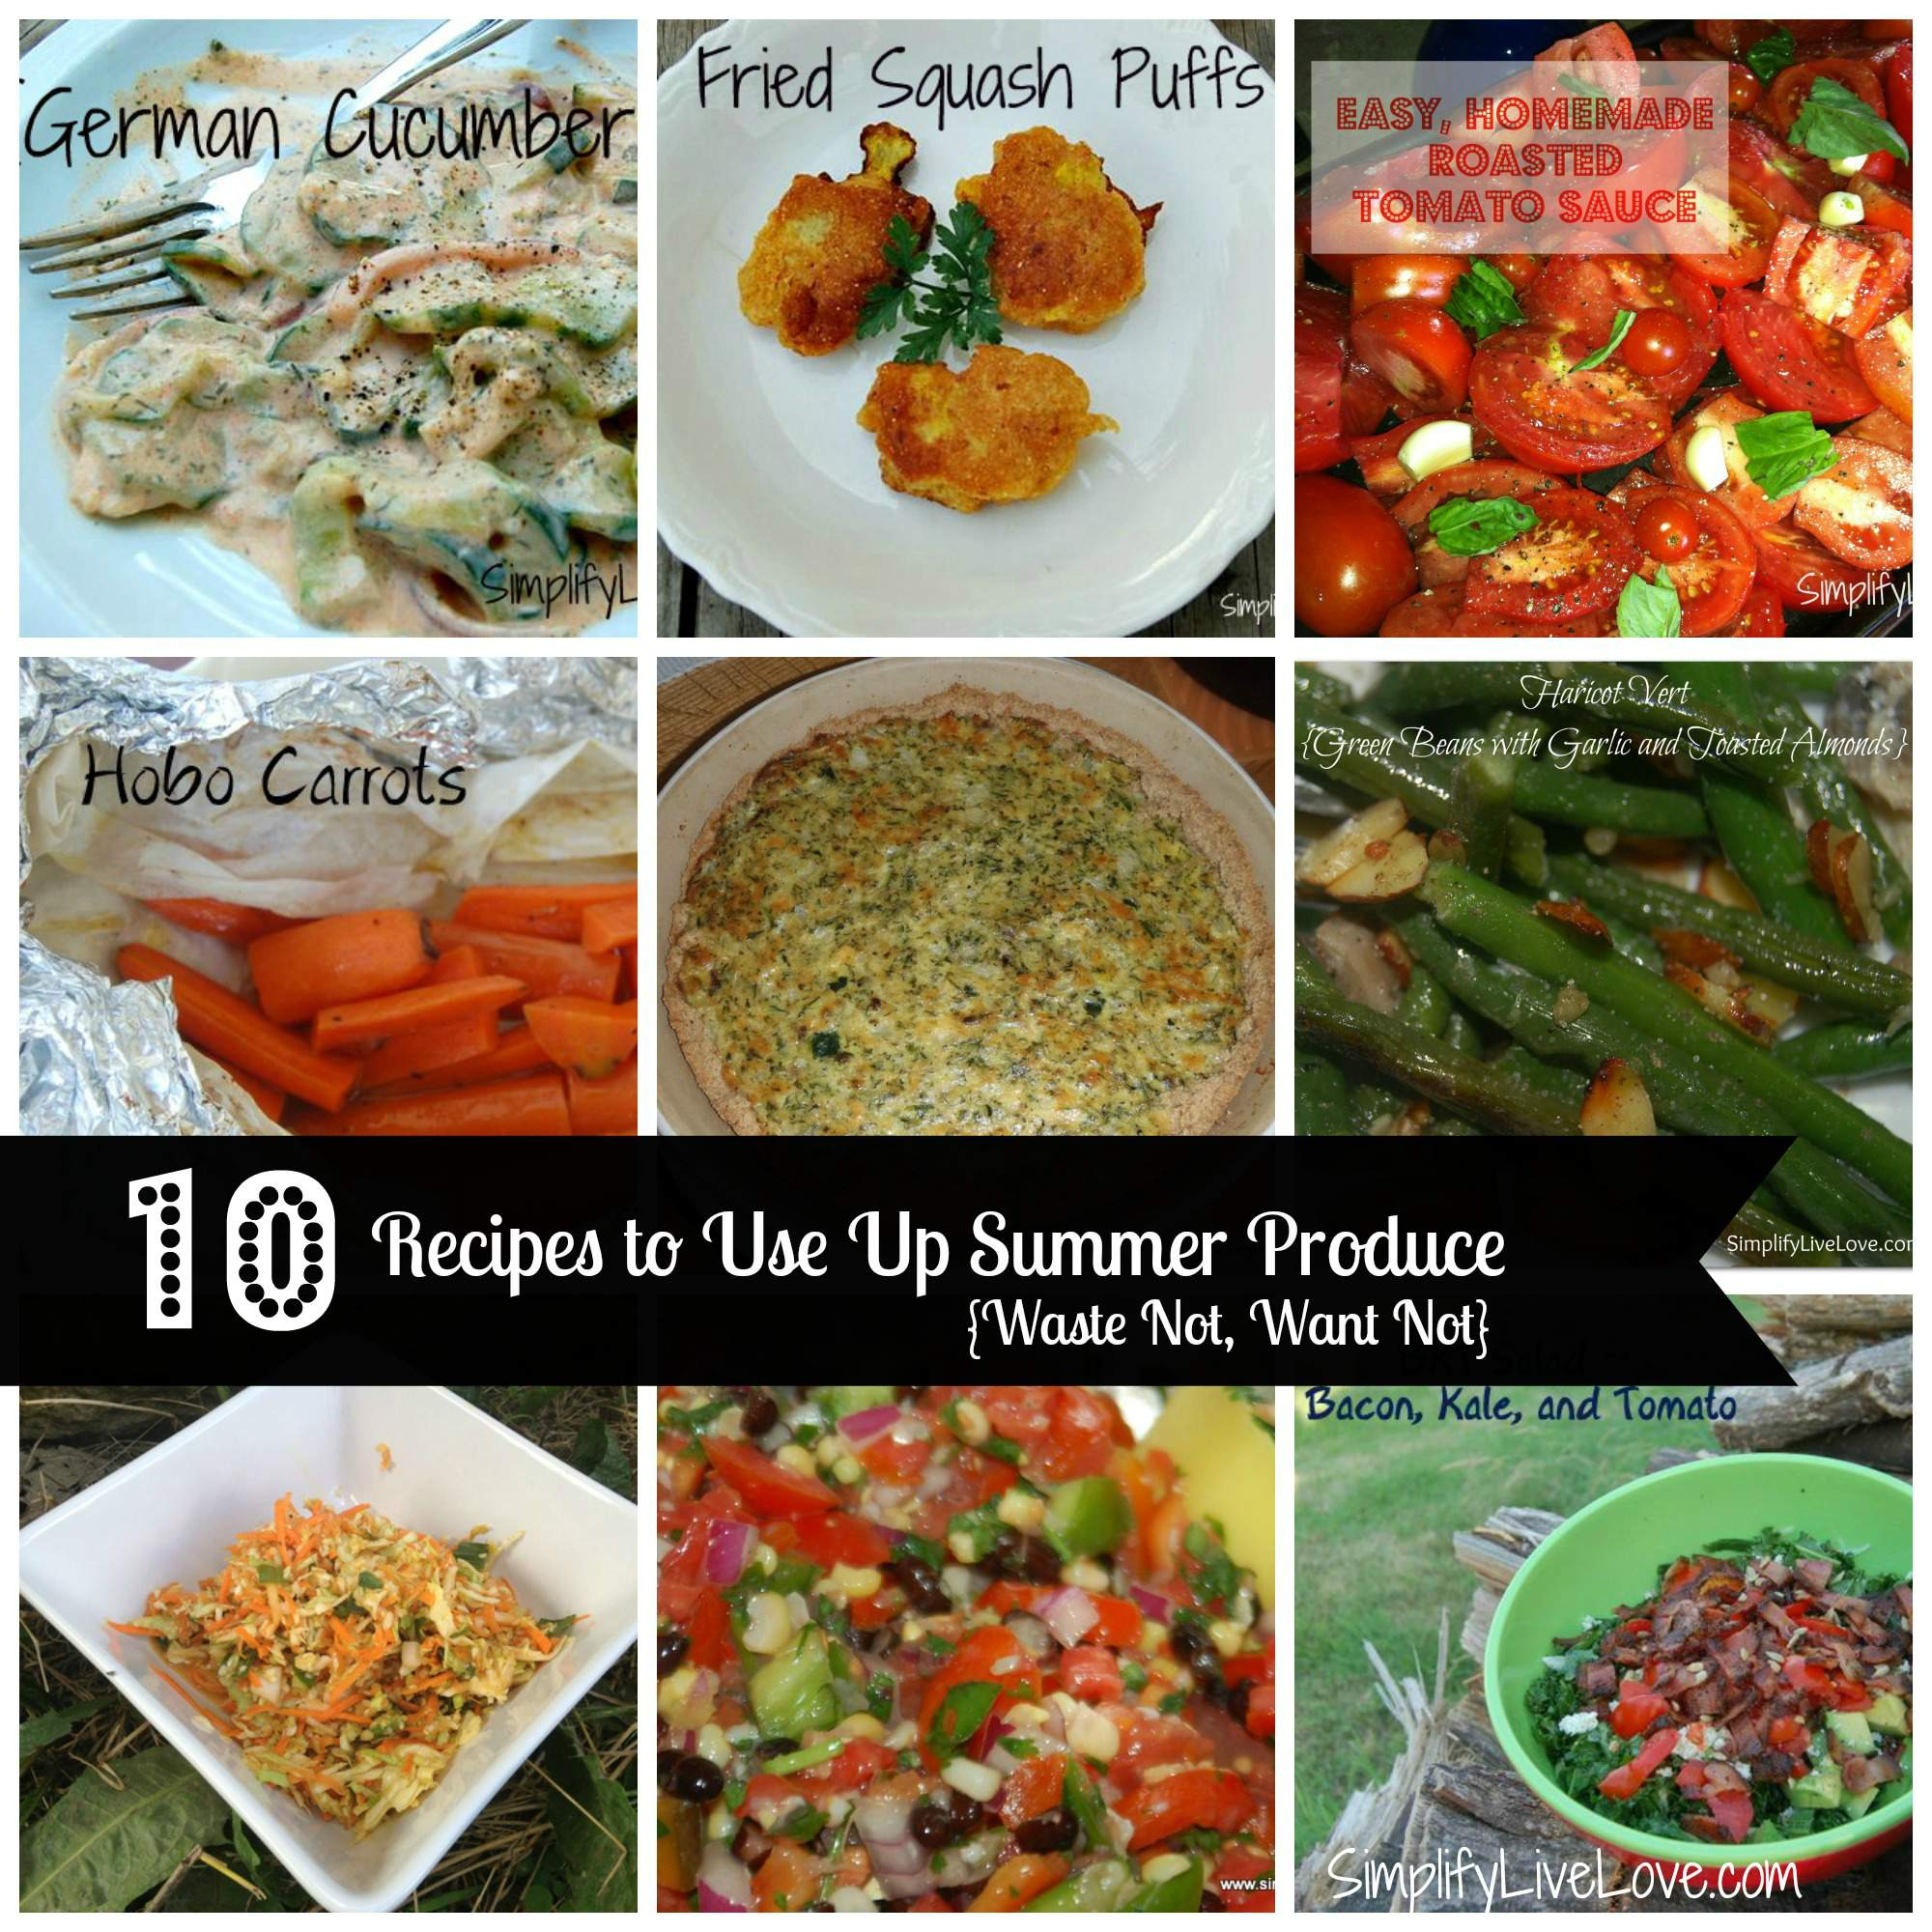 Don't let your summer garden veggies go to waste! Here are 10 delicious summer produce recipes to help you use it all up! These recipes for squash, zucchini, cucumbers, green beans, kale, tomatoes and more are all hits at our house.